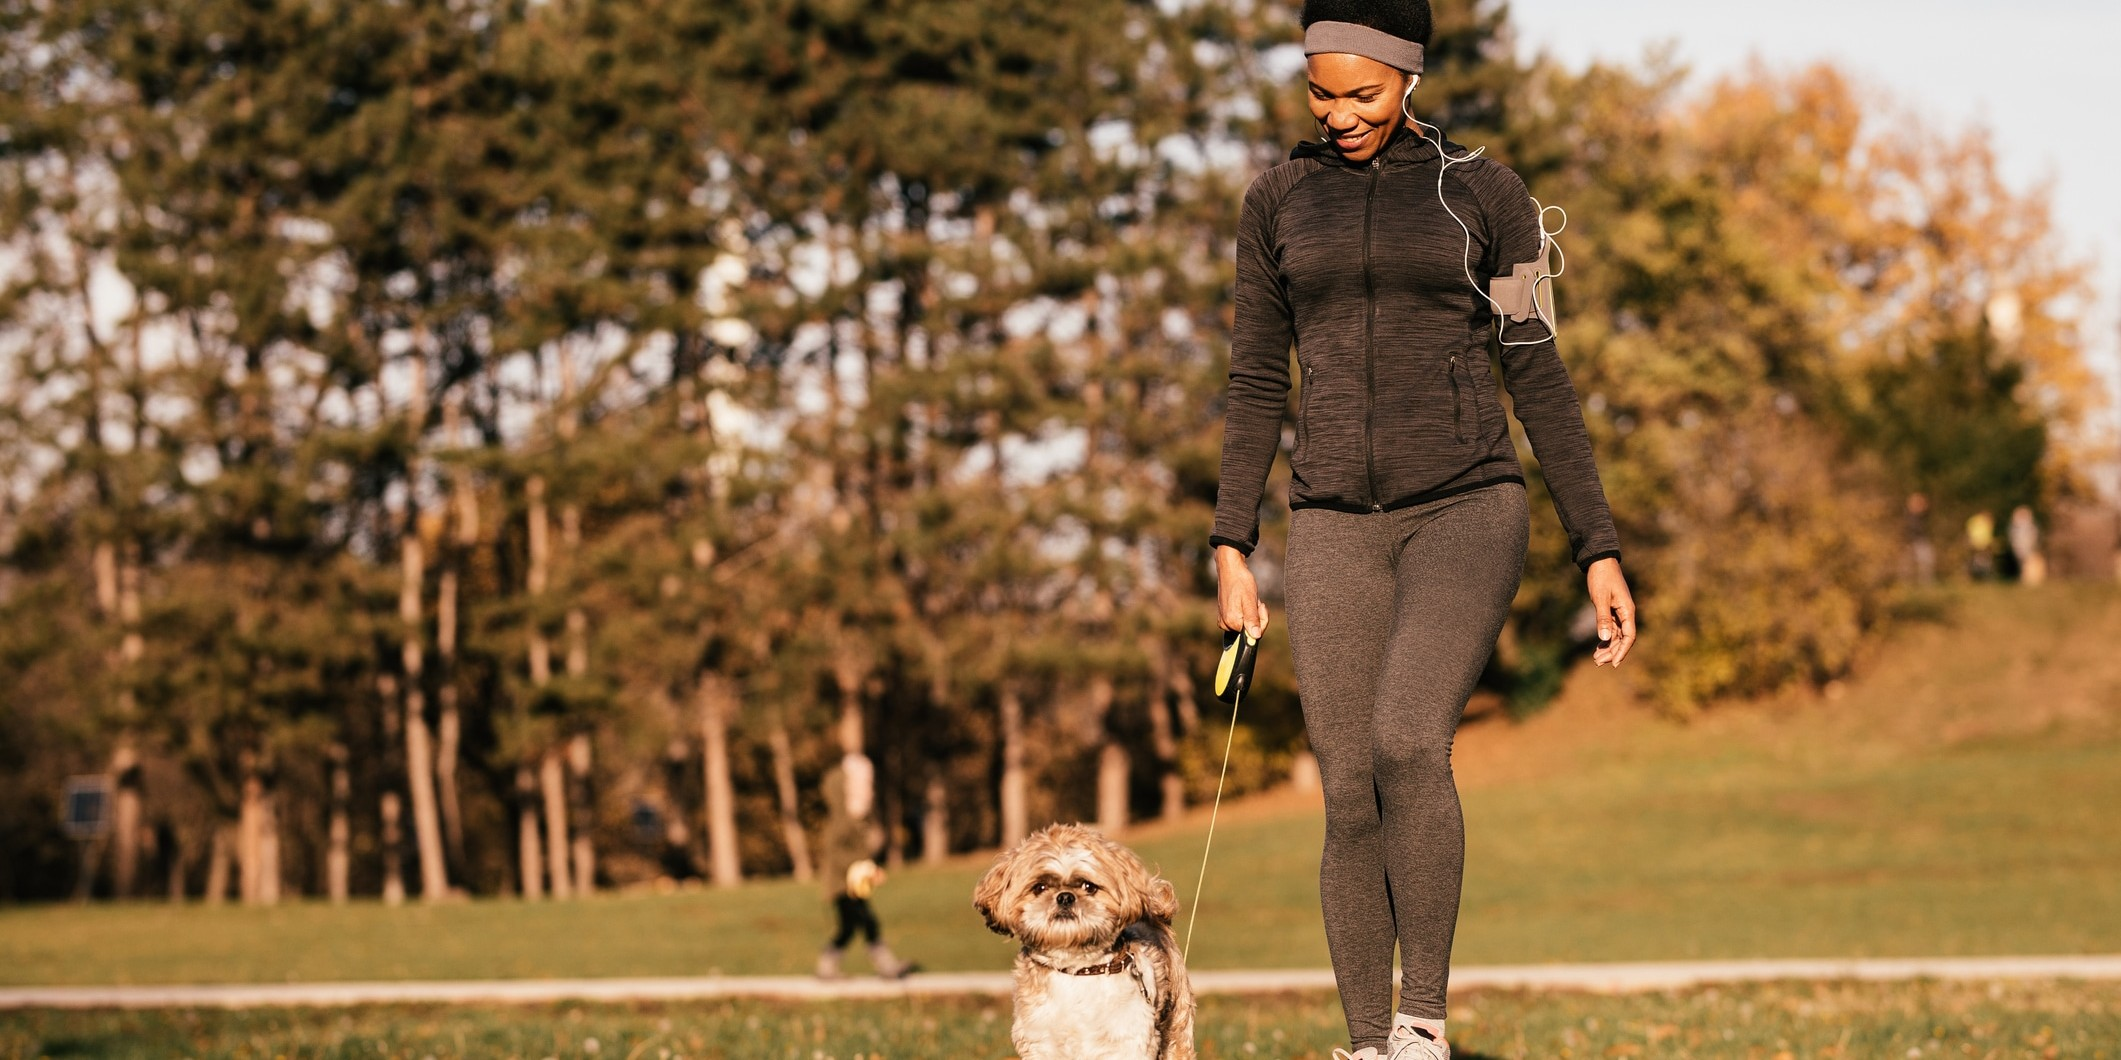 person walking dog in a park